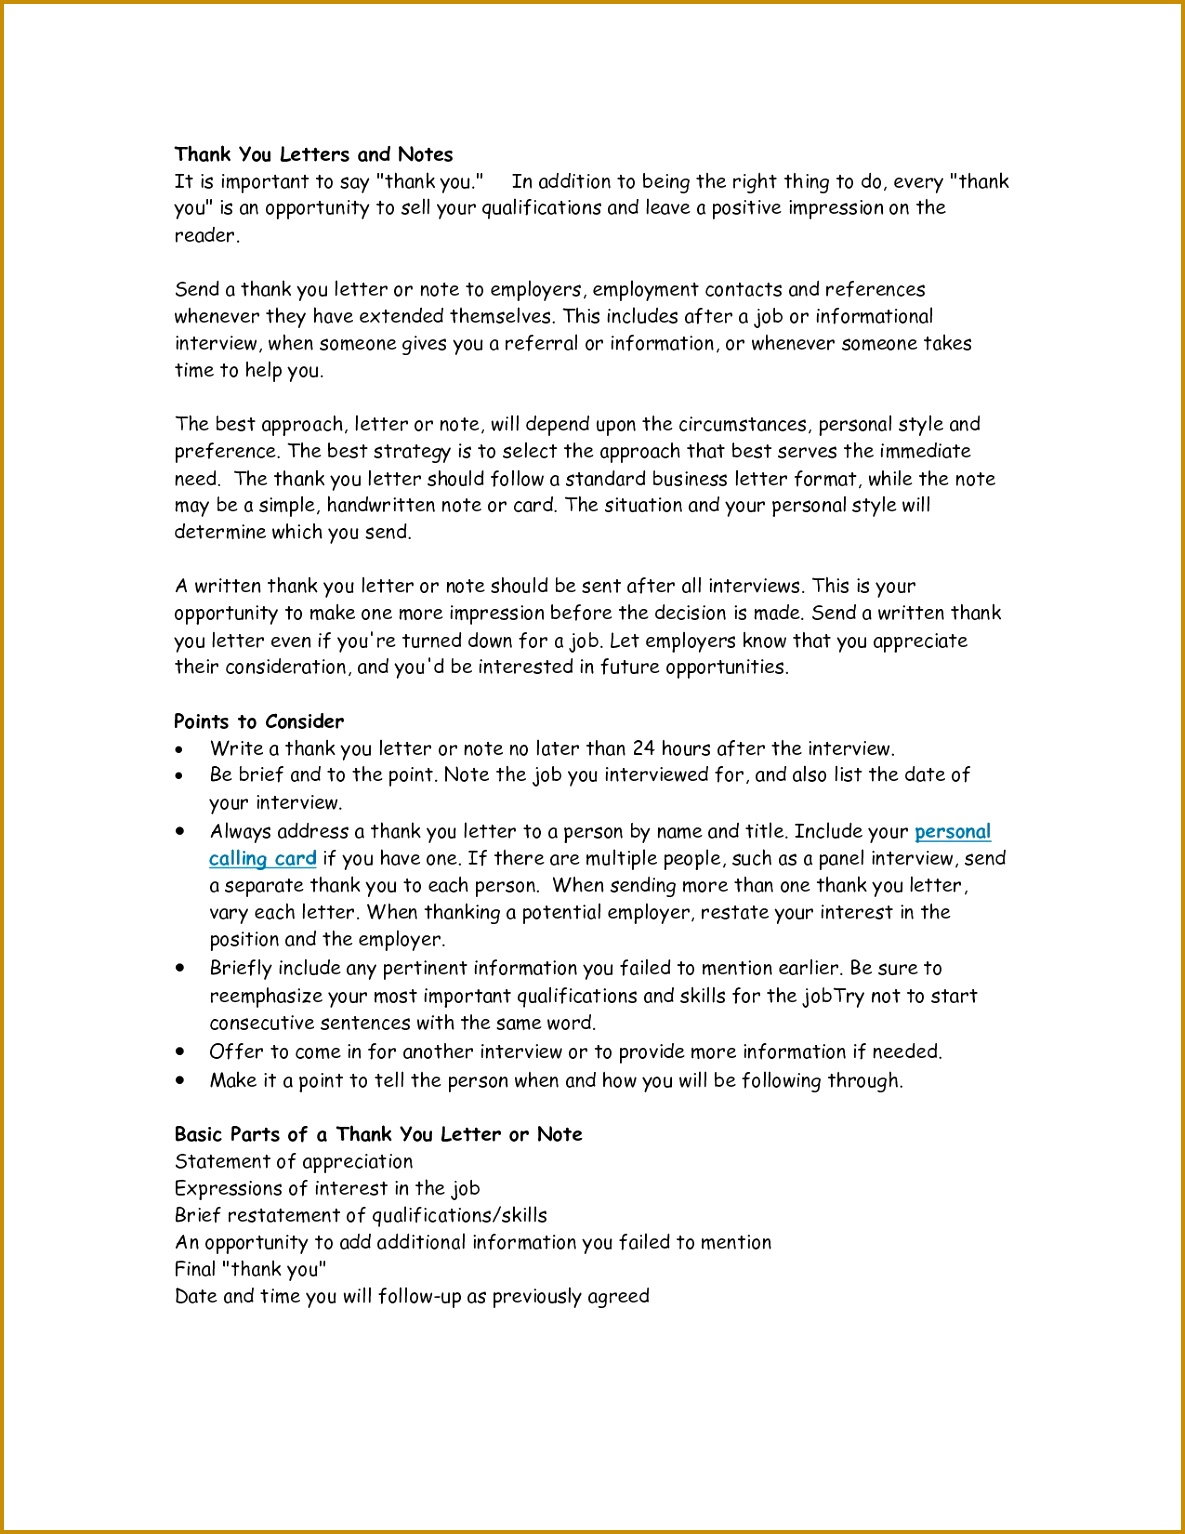 Email Learn About Clients Sgartclass 0d Document Ideas Thank You Letter Fresh Thank You Letter to Boss when Leaving Pdf format 15341185